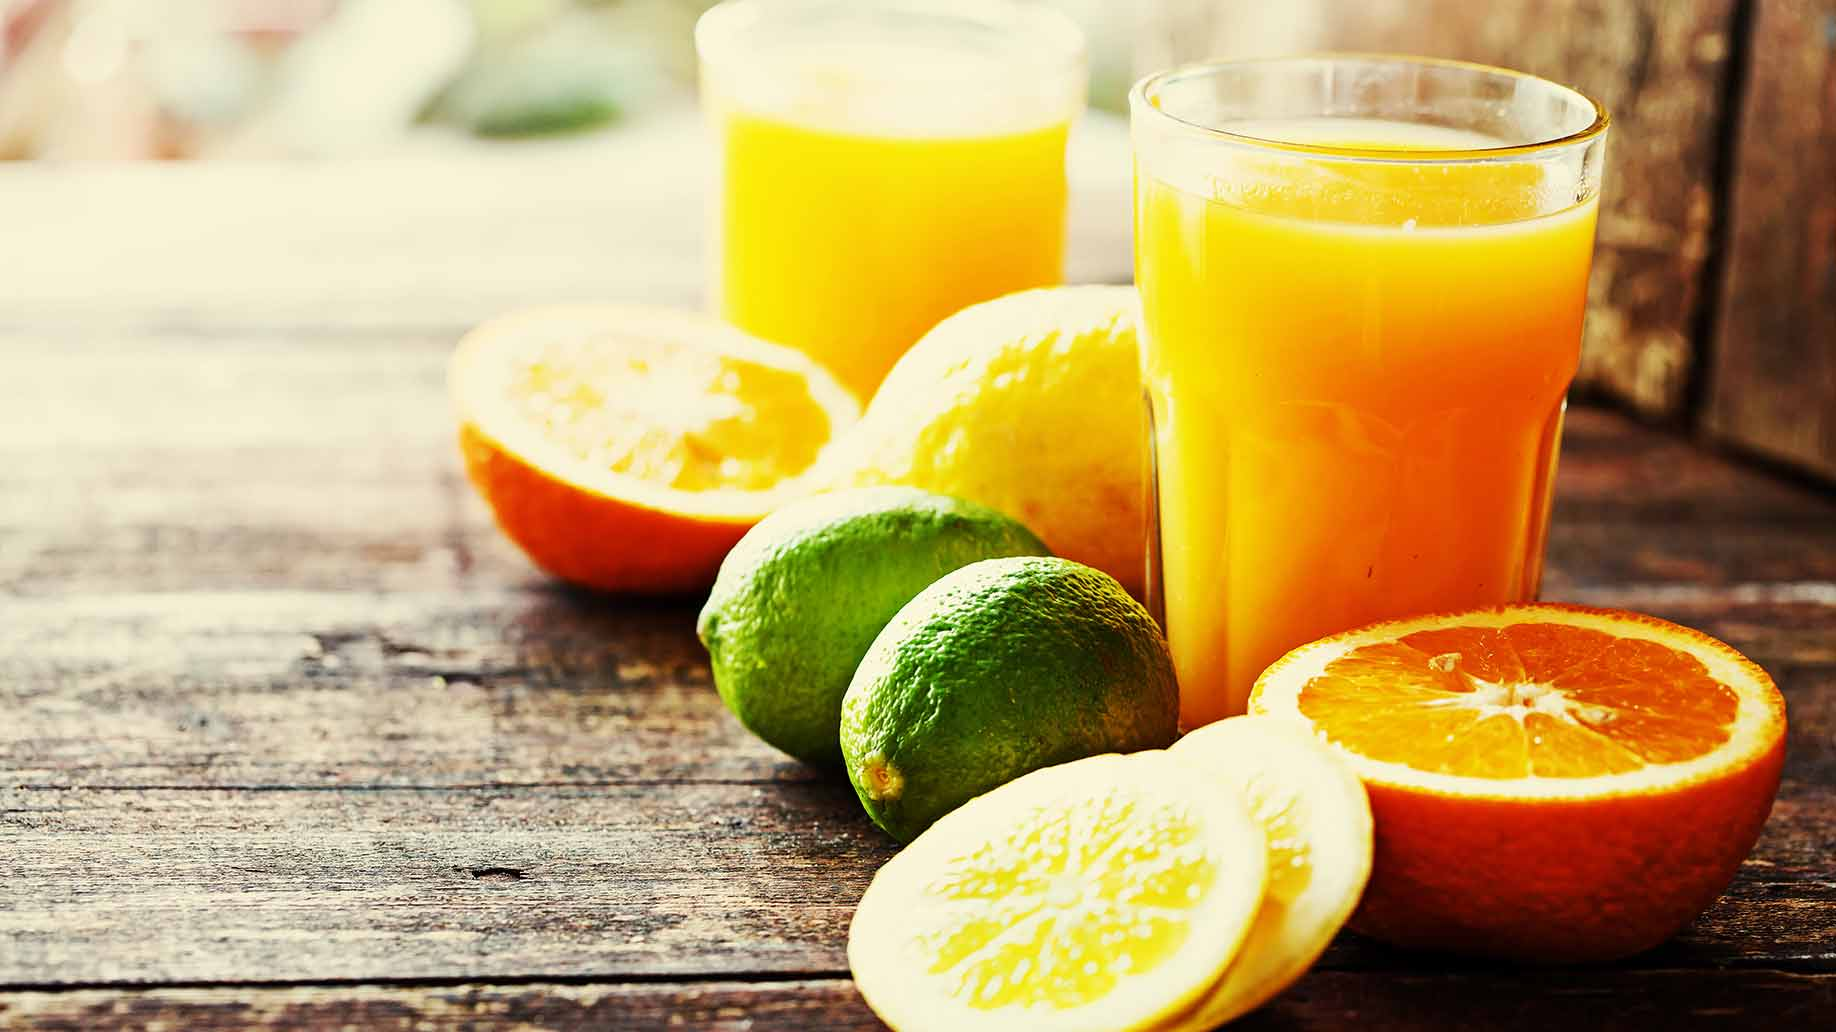 colon cleanse citrus juices and smoothies orange lime vitamin c drinks